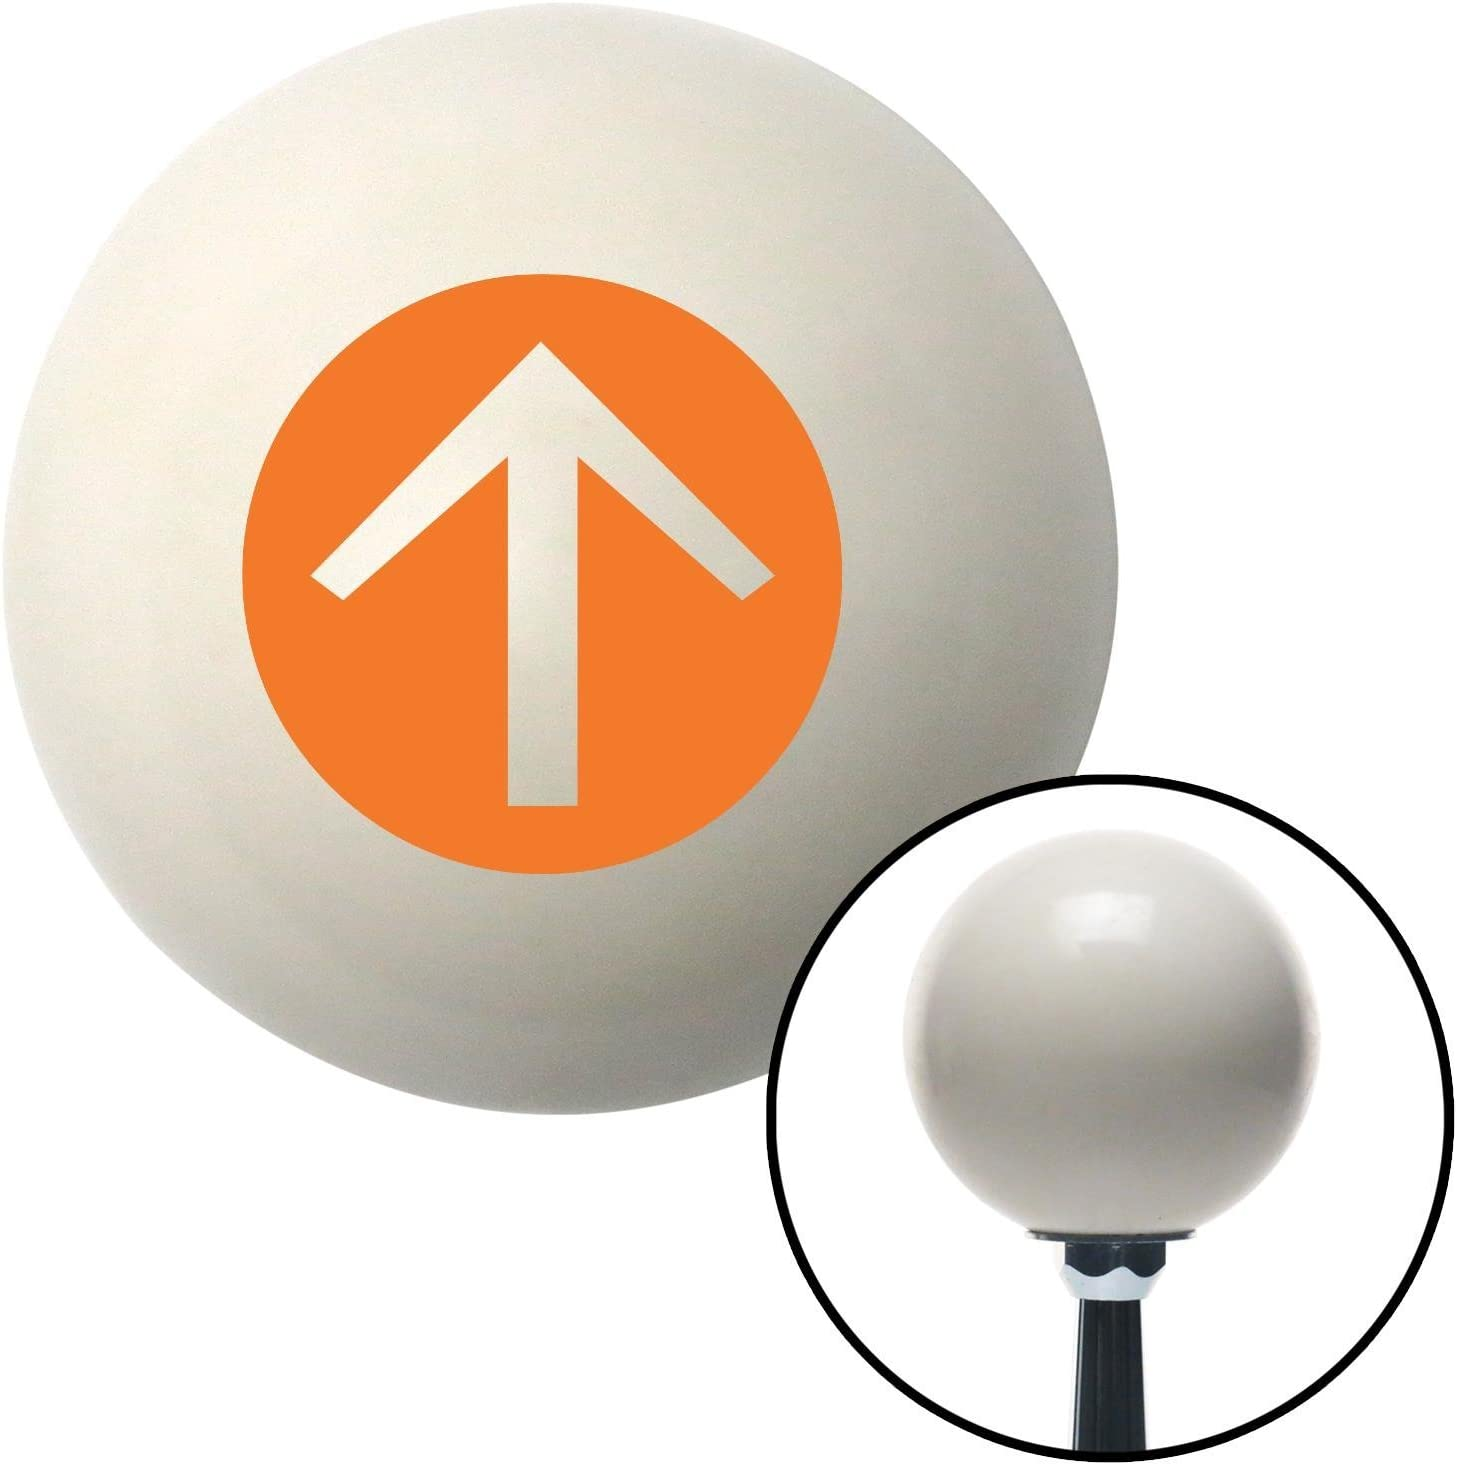 American Shifter 30173 Ivory Shift Knob with 16mm x 1.5 Insert Orange Circle Directional Arrow Up